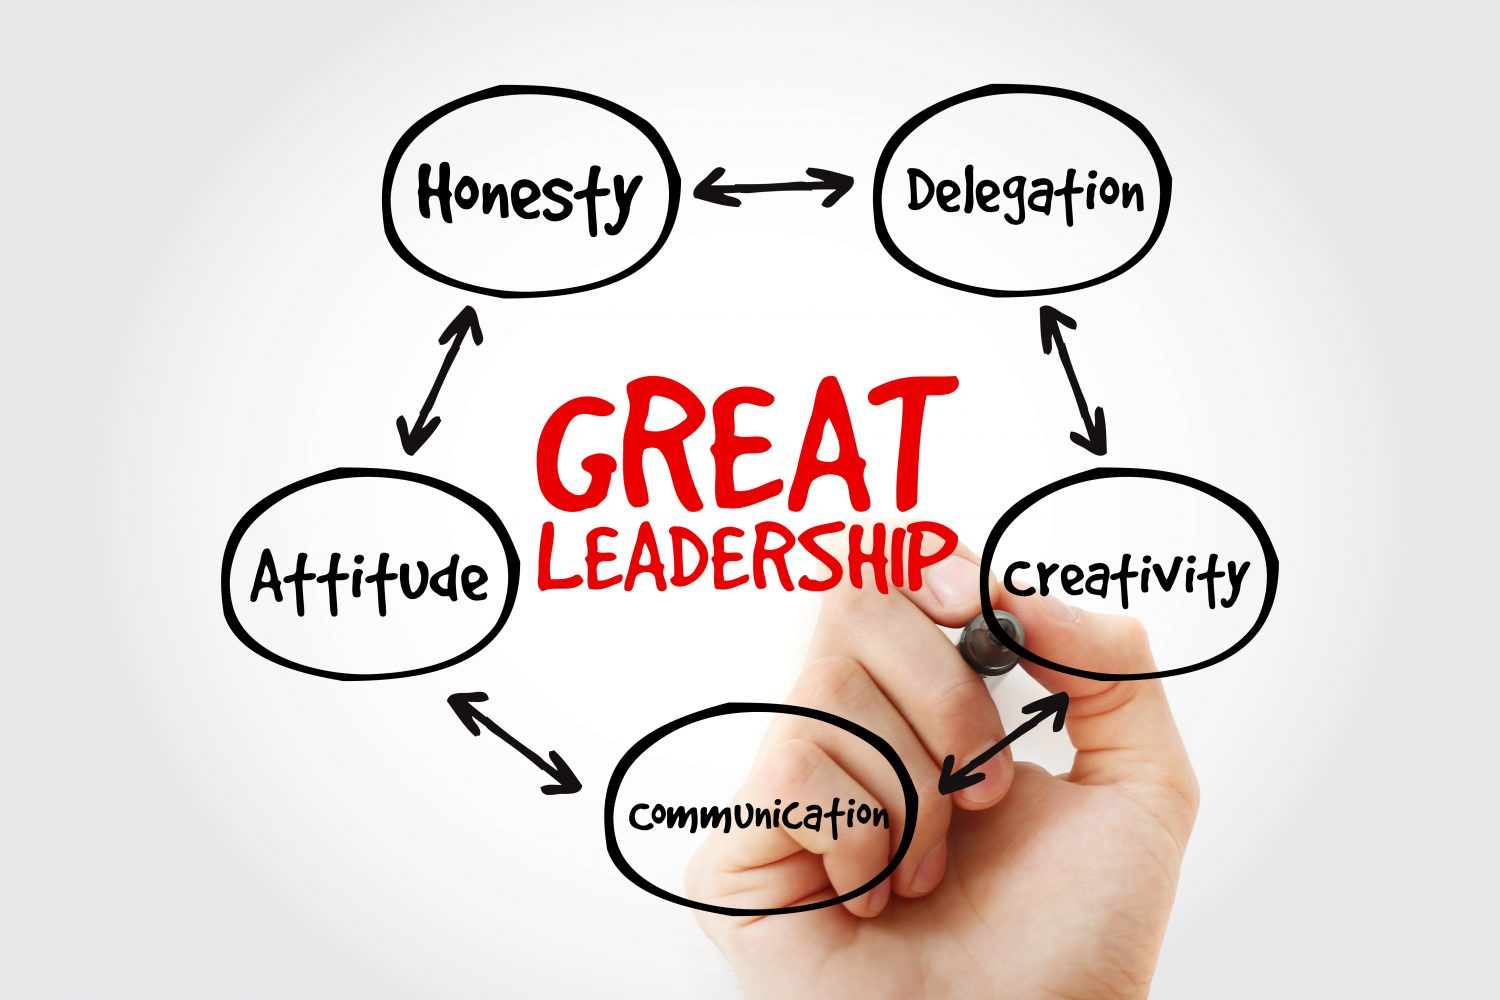 Top qualities of a leader